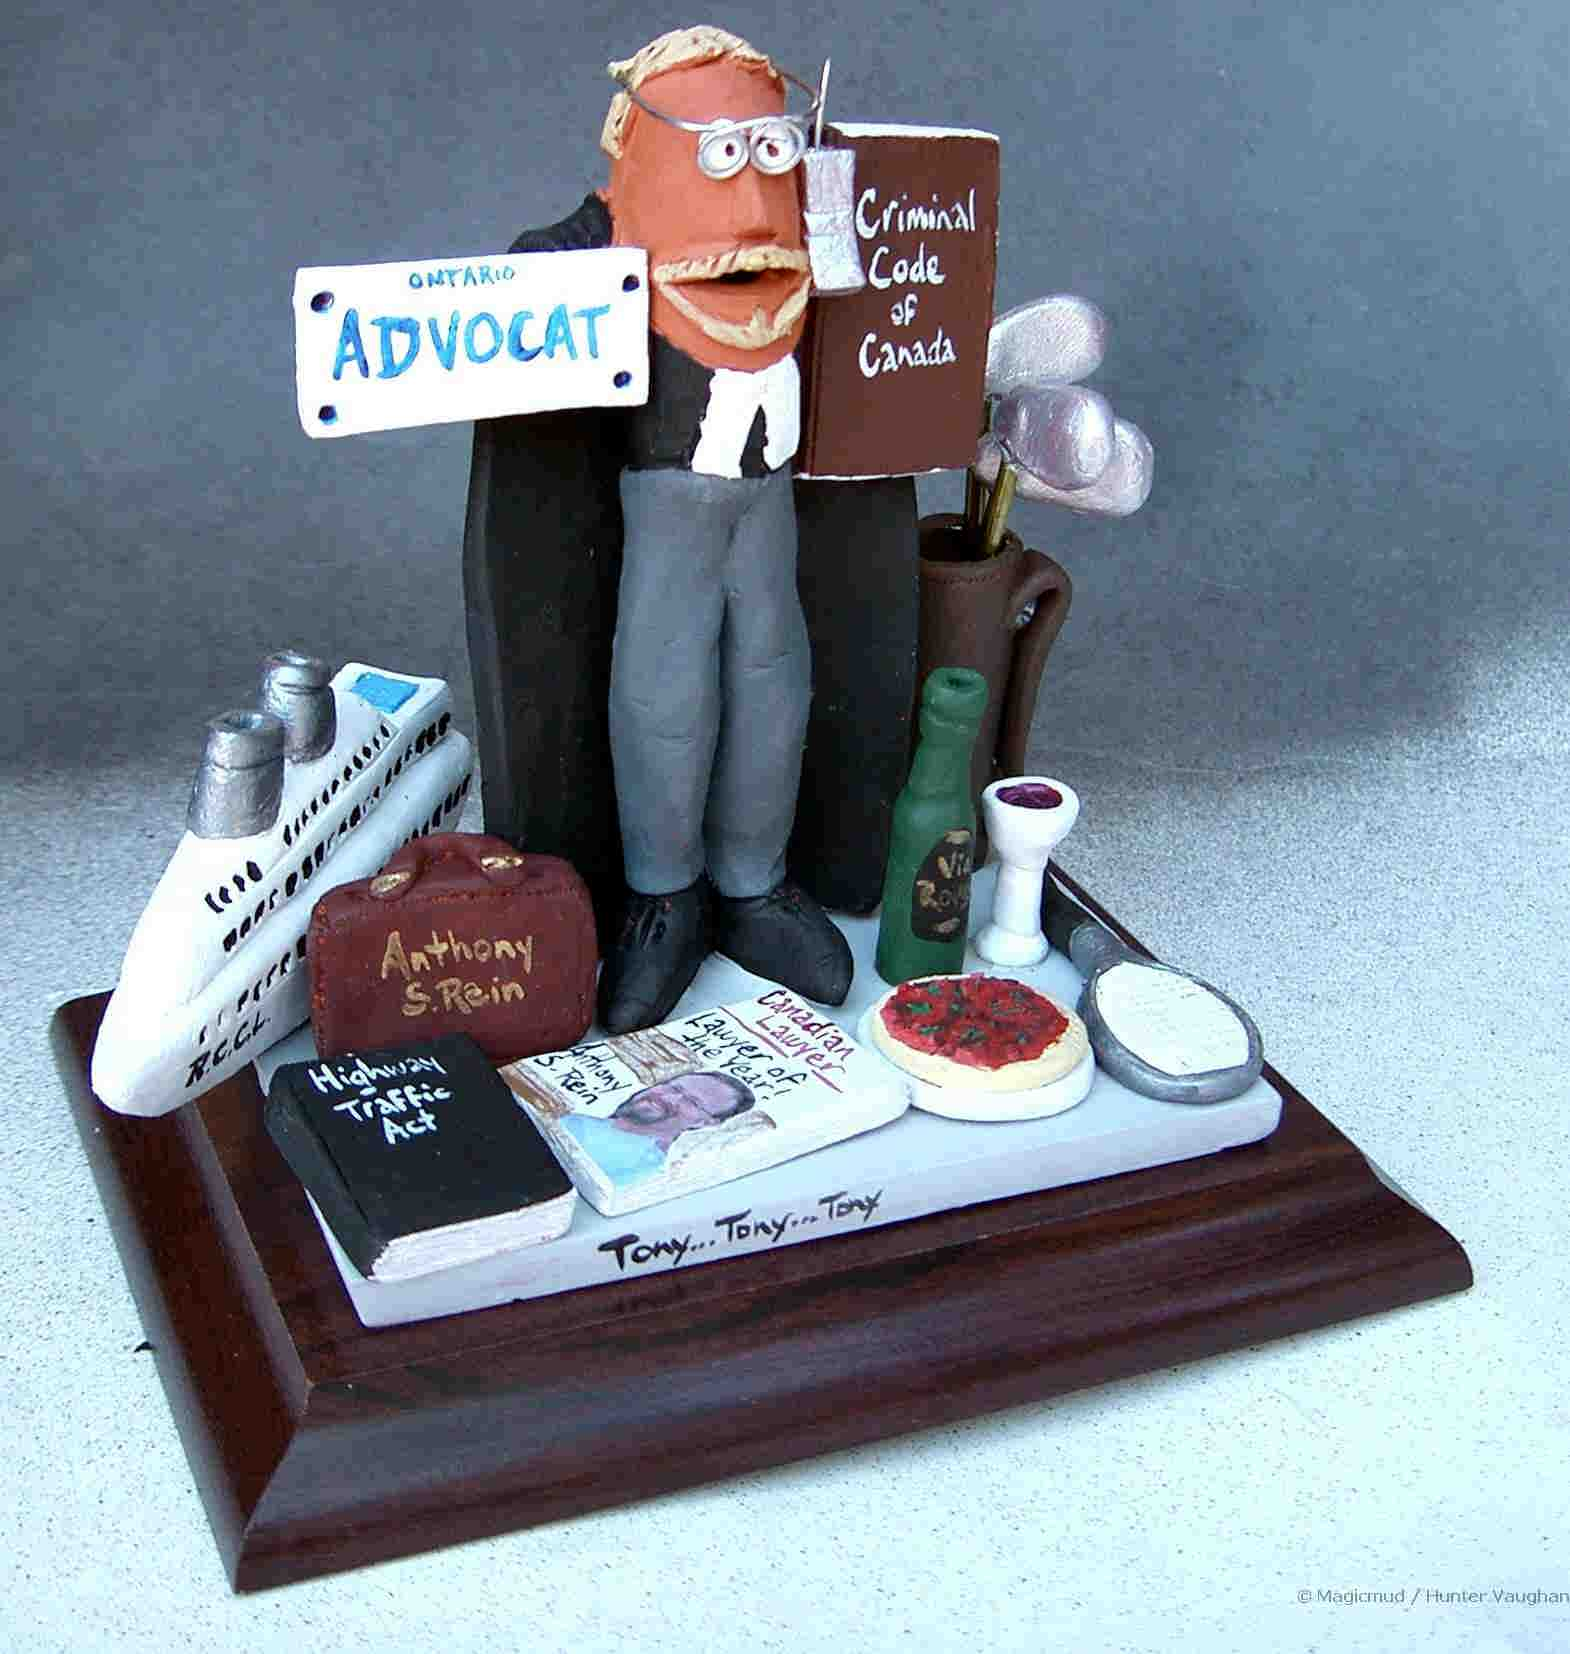 Lawyer Statue With His Personal License Plate Cruise Ship And More